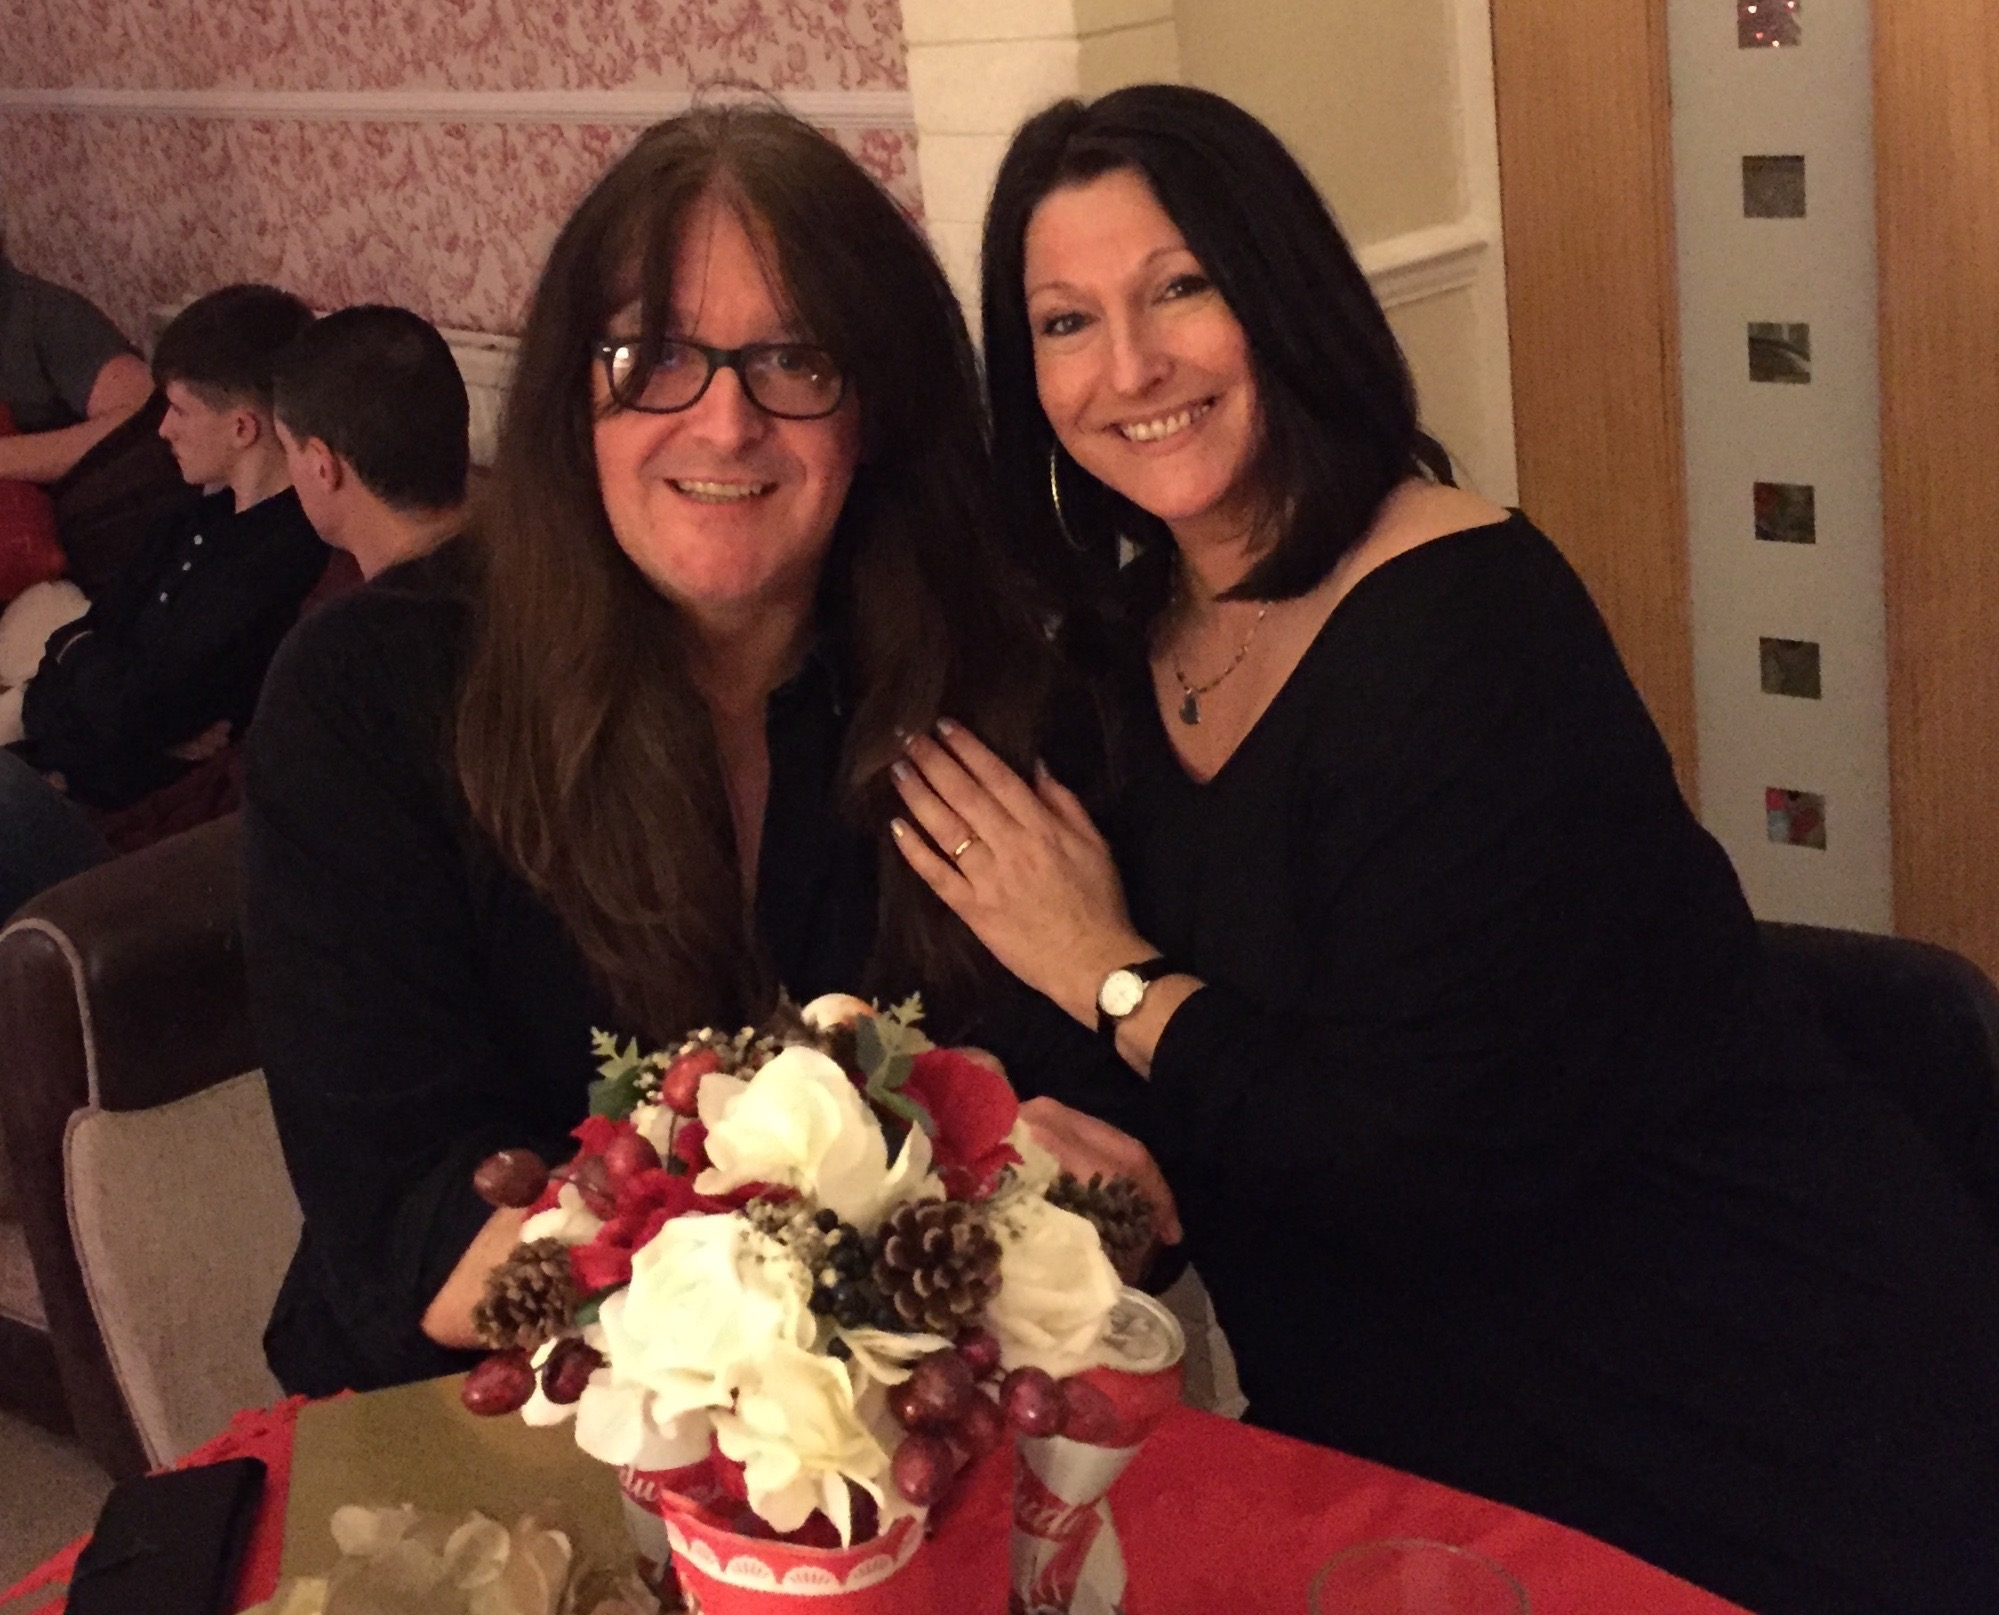 """Yep, it's John Paul Vaughn (aka """"JP"""") and my sister-in-law Andrea. Her engagement ring is her mother's old wedding ring which JP had gold added to, to make it bigger to get the right fit. Lovely couple with fab hair-dos!!"""